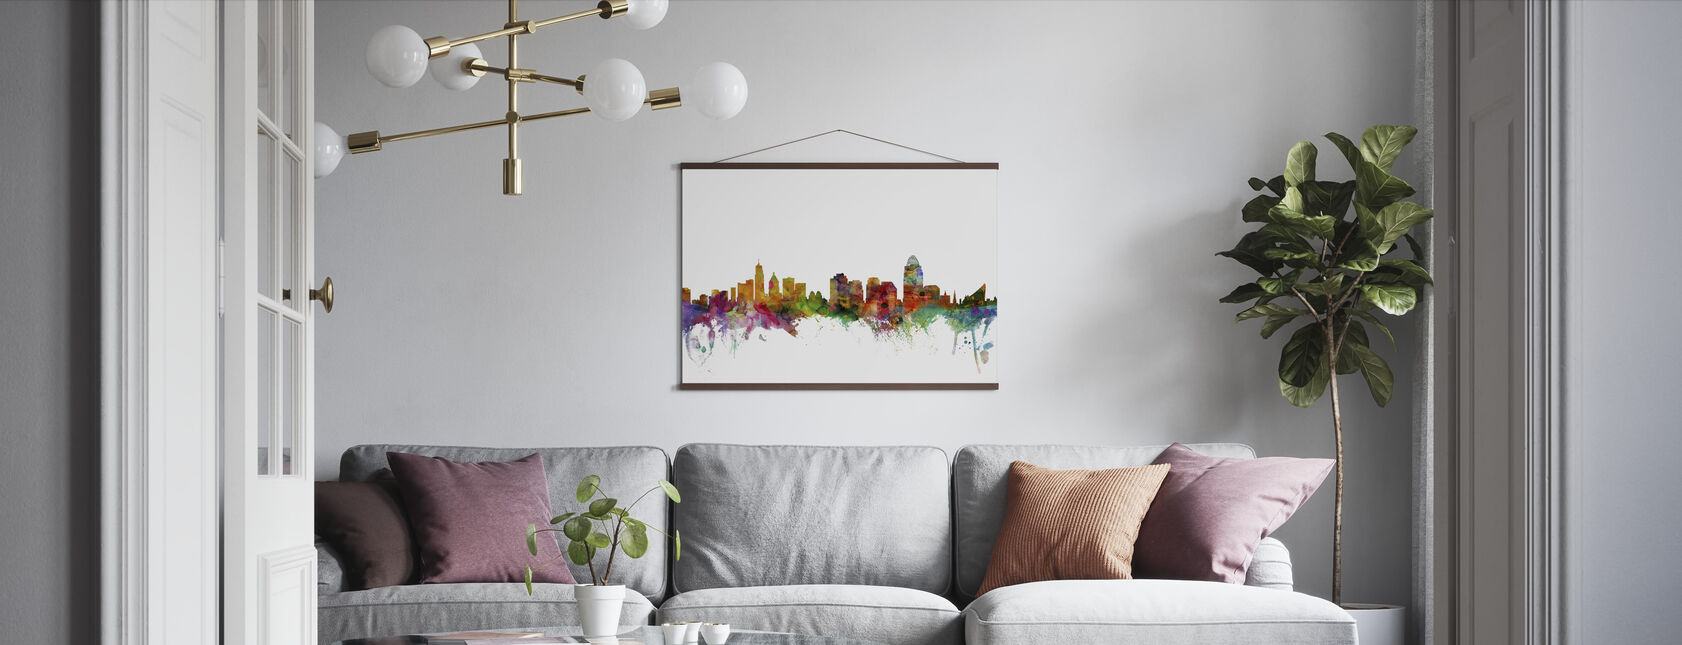 Cincinnati Ohio Skyline - Poster - Living Room